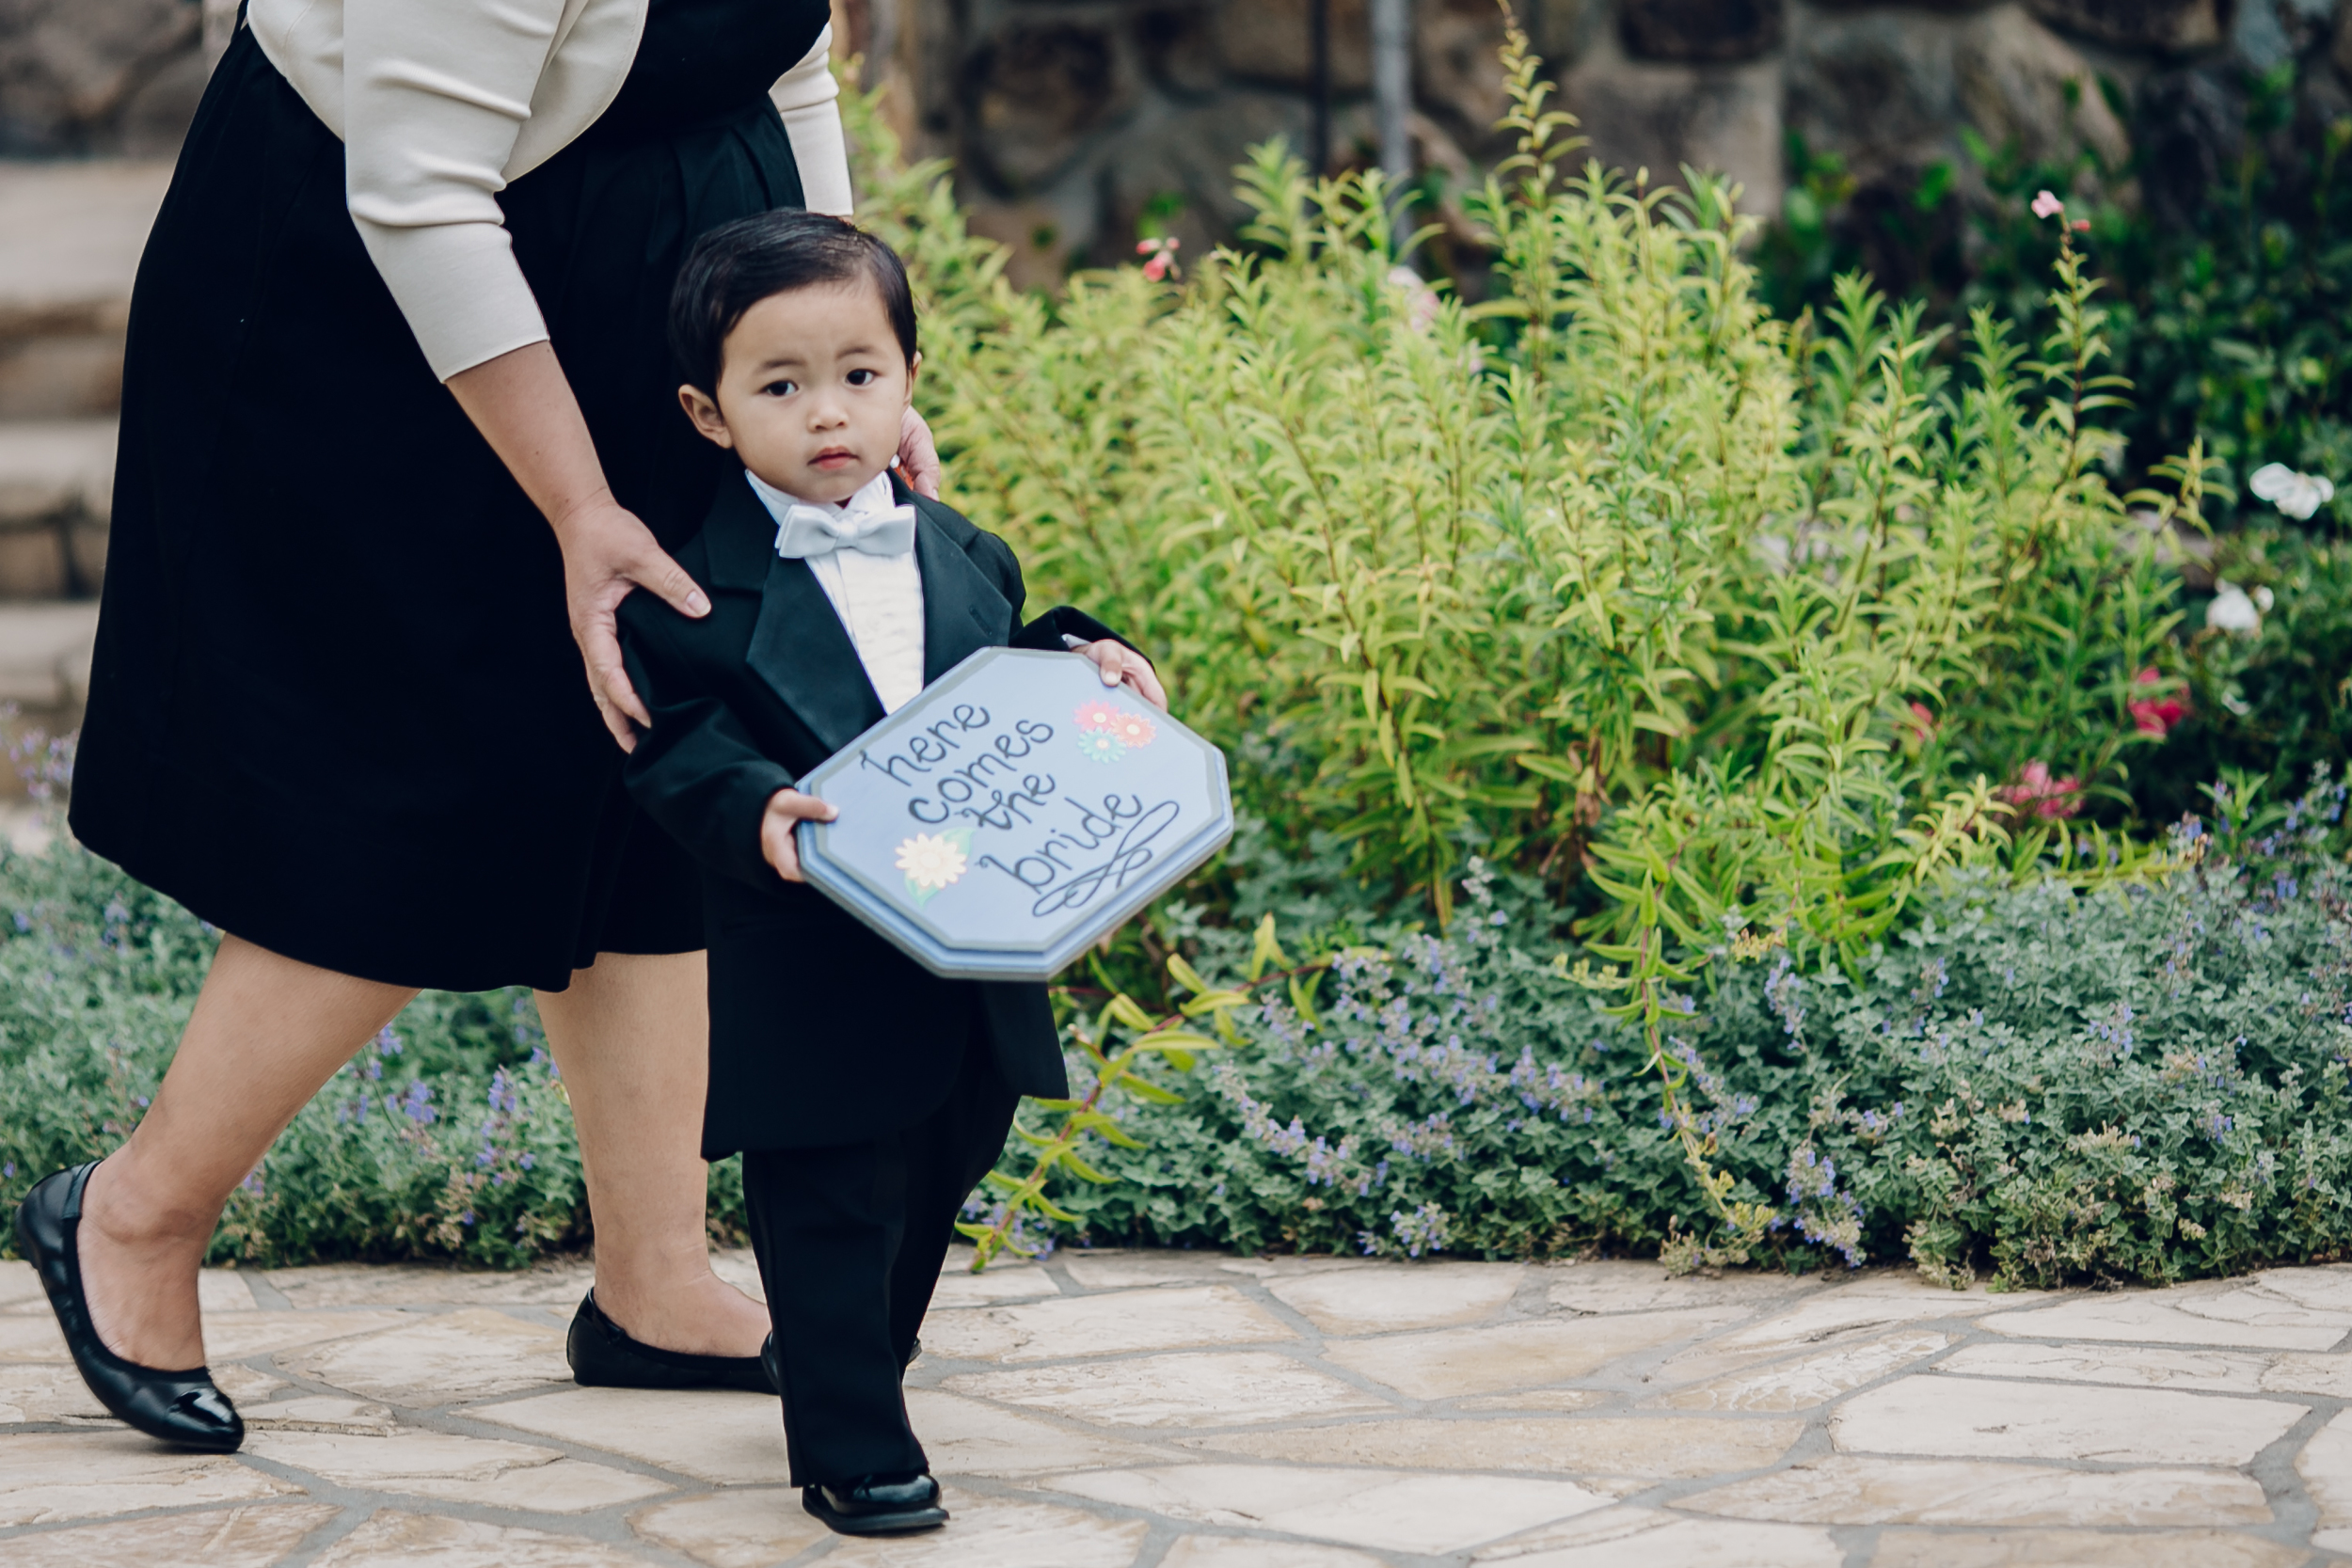 Shiela + Lester's Wedding 9-30-15 097-Edit.jpg